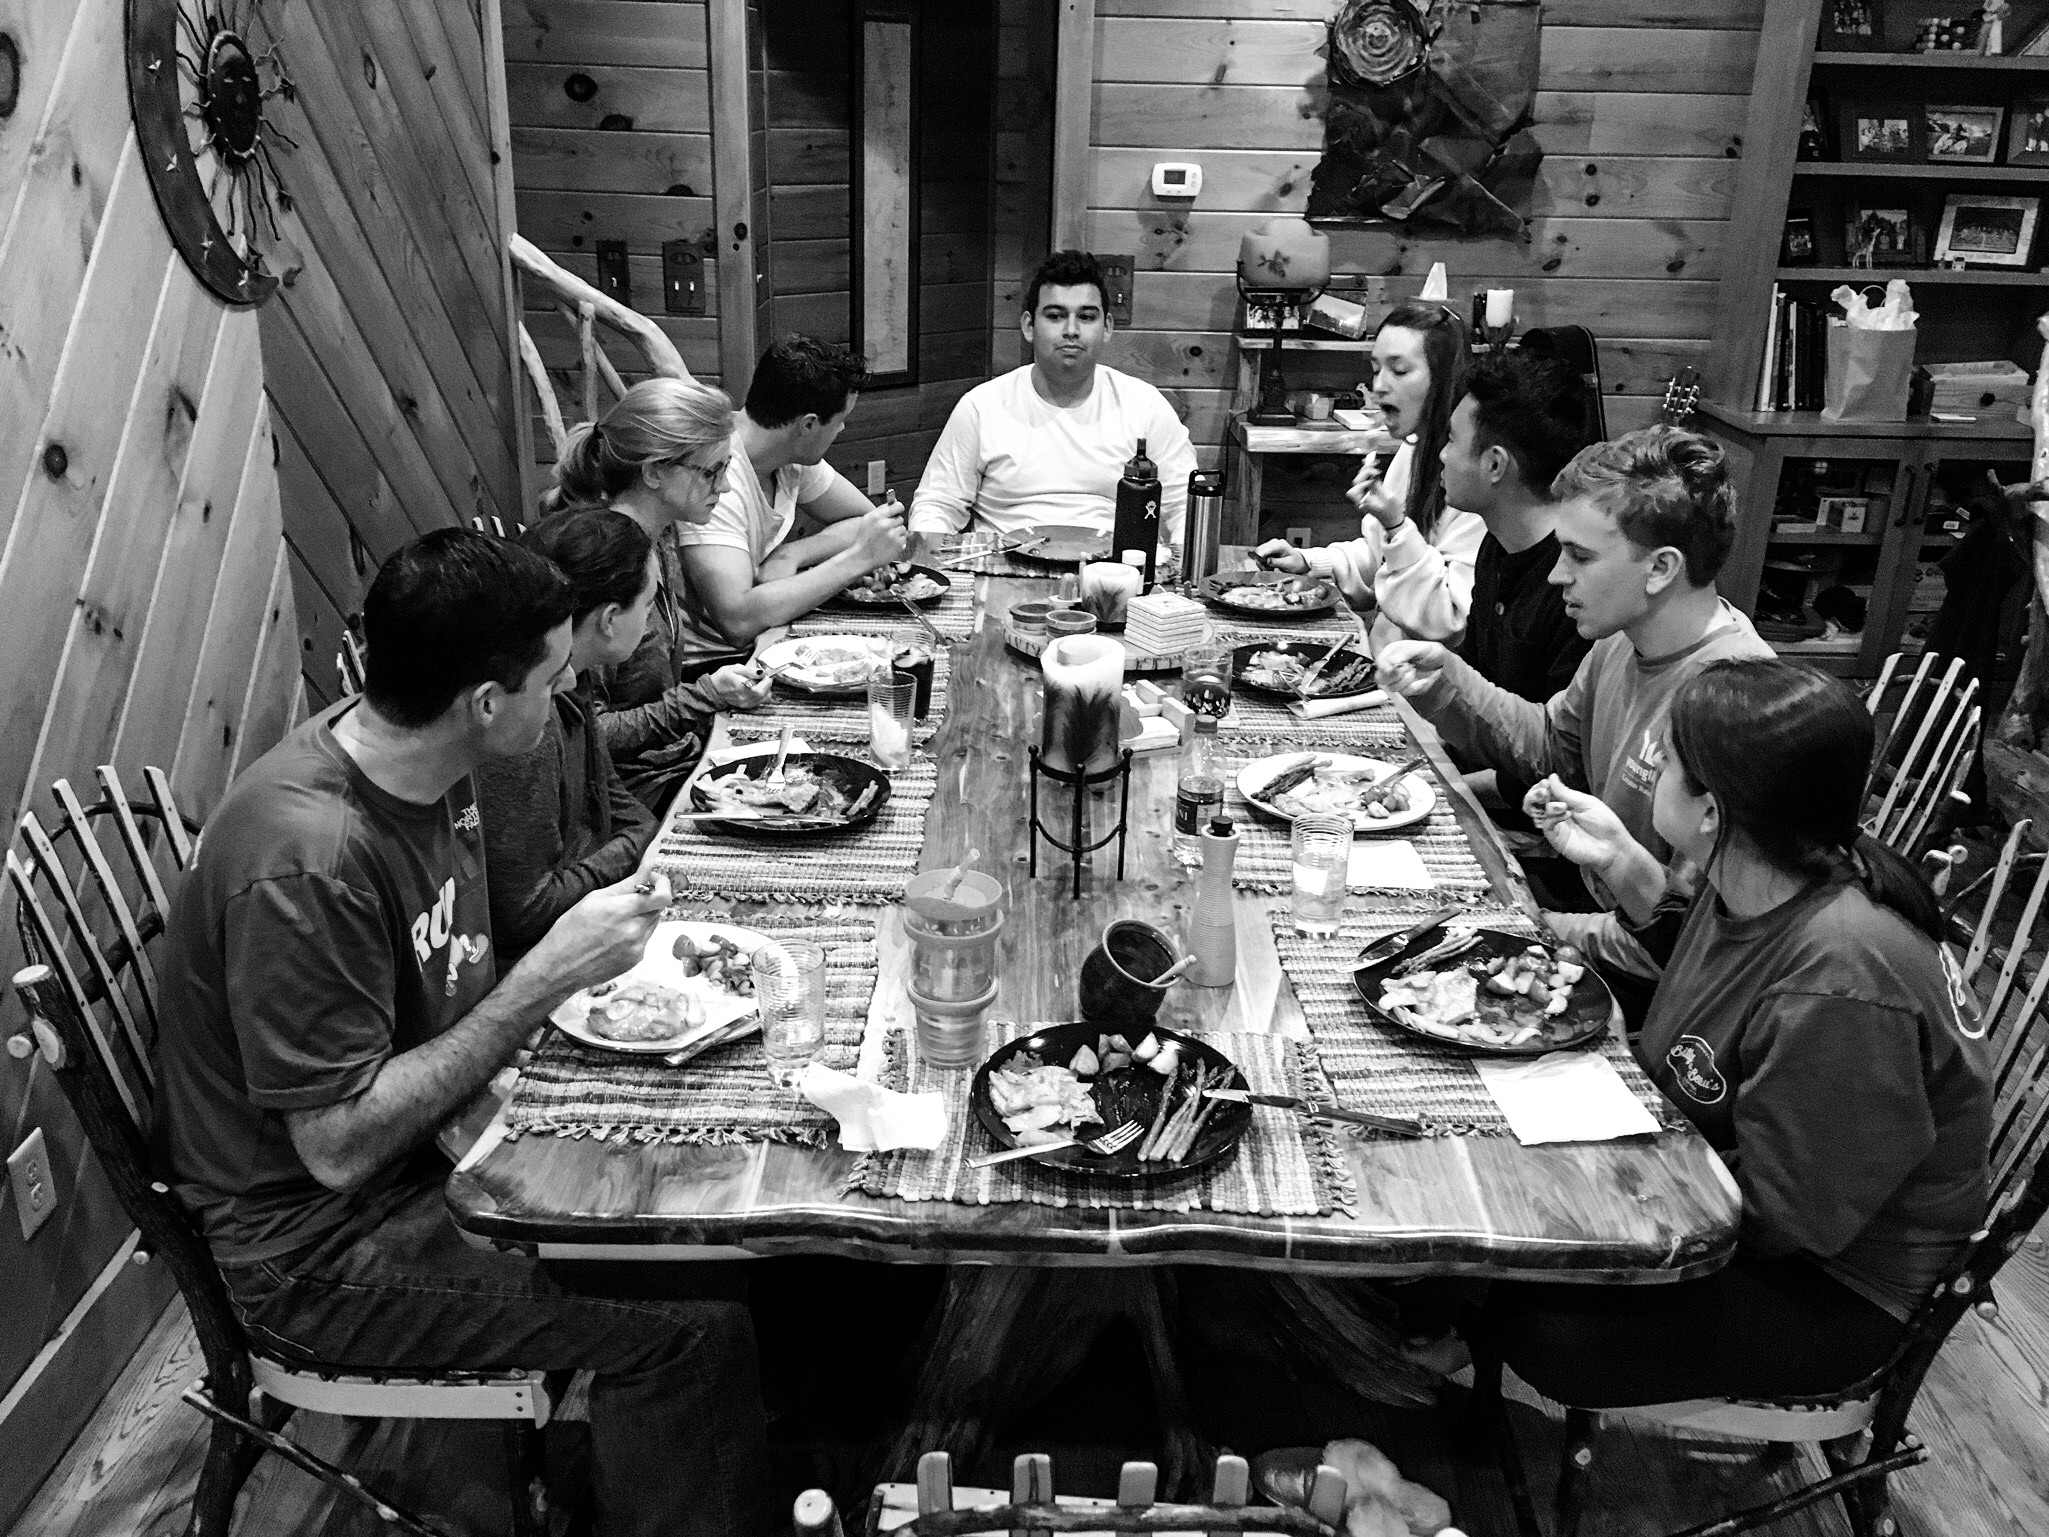 At first, I was disappointed that this is the only picture I have of us around the table. But then, I realized that this is real. This is honest. This is what life around the table actually looks like. So here ya go...